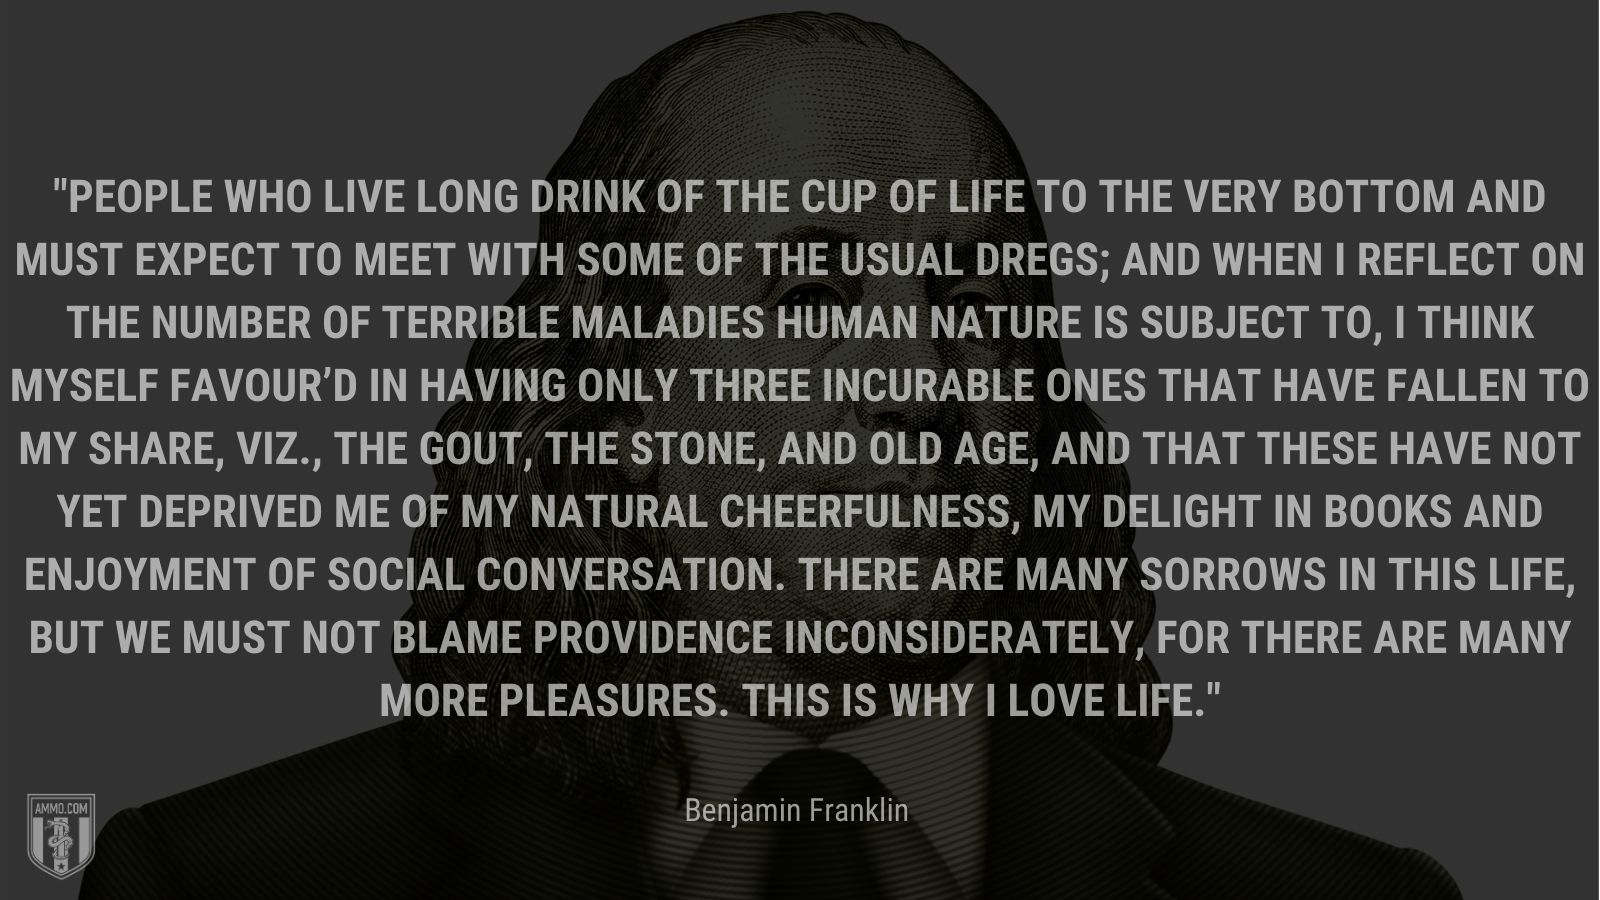 """""""People who live long drink of the cup of life to the very bottom and must expect to meet with some of the usual dregs;  and when I reflect on the number of terrible maladies human nature is subject to, I think myself favour'd in having only three incurable ones that have fallen to my share, viz., the gout, the stone, and old age, and that these have not yet deprived me of my natural cheerfulness, my delight in books and enjoyment of social conversation. There are many sorrows in this life, but we must not blame Providence inconsiderately, for there are many more pleasures. This is why I love life."""" - Benjamin Franklin"""